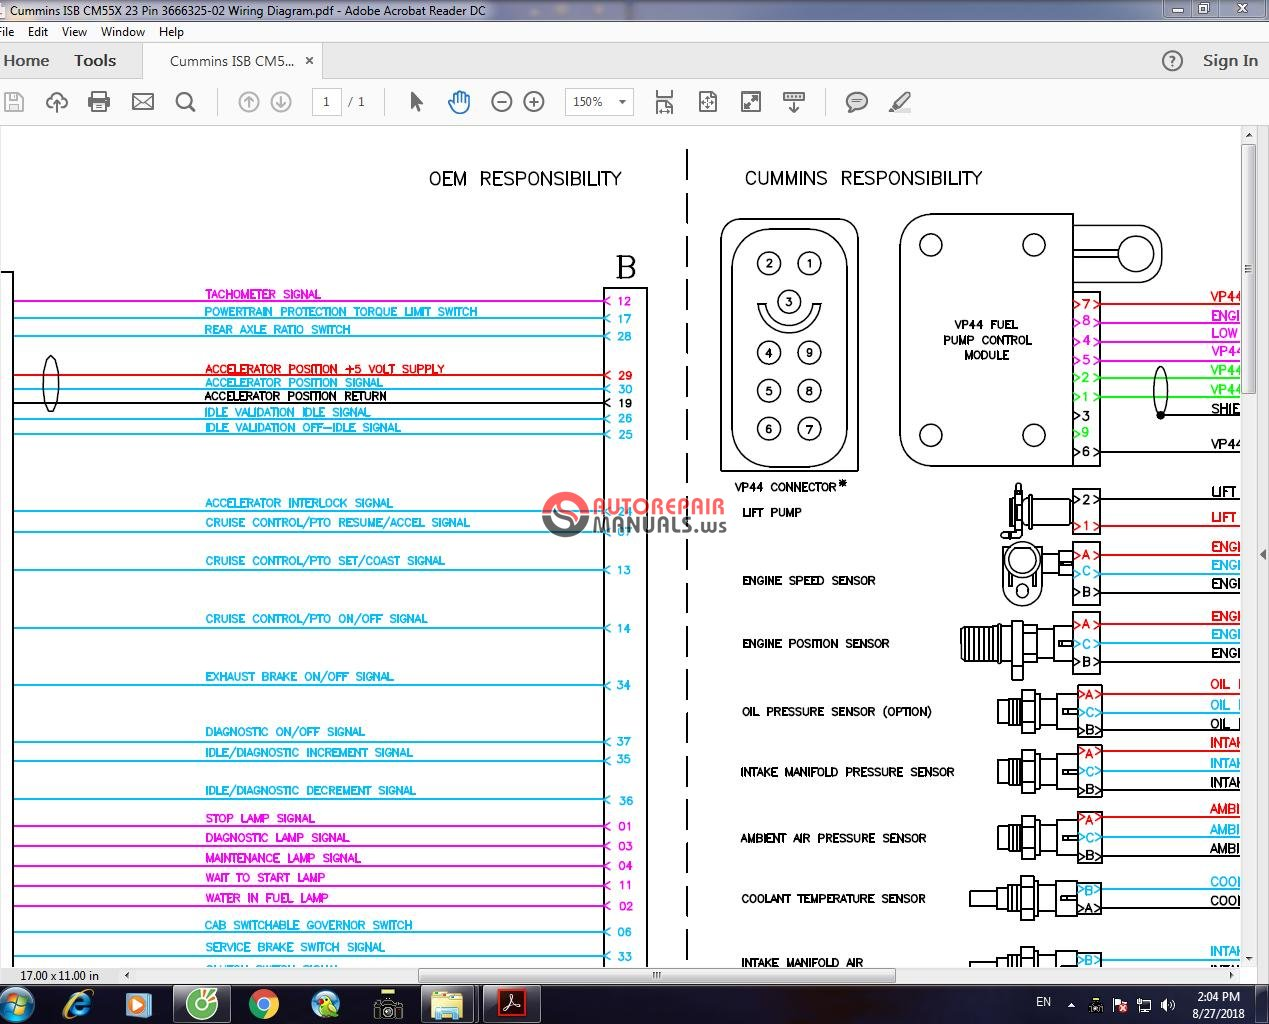 isb 23 pin wiring diagram cummins isb cm55x 23 pin 3666325-02 wiring diagram | auto ... isb after treatment wiring diagram #4